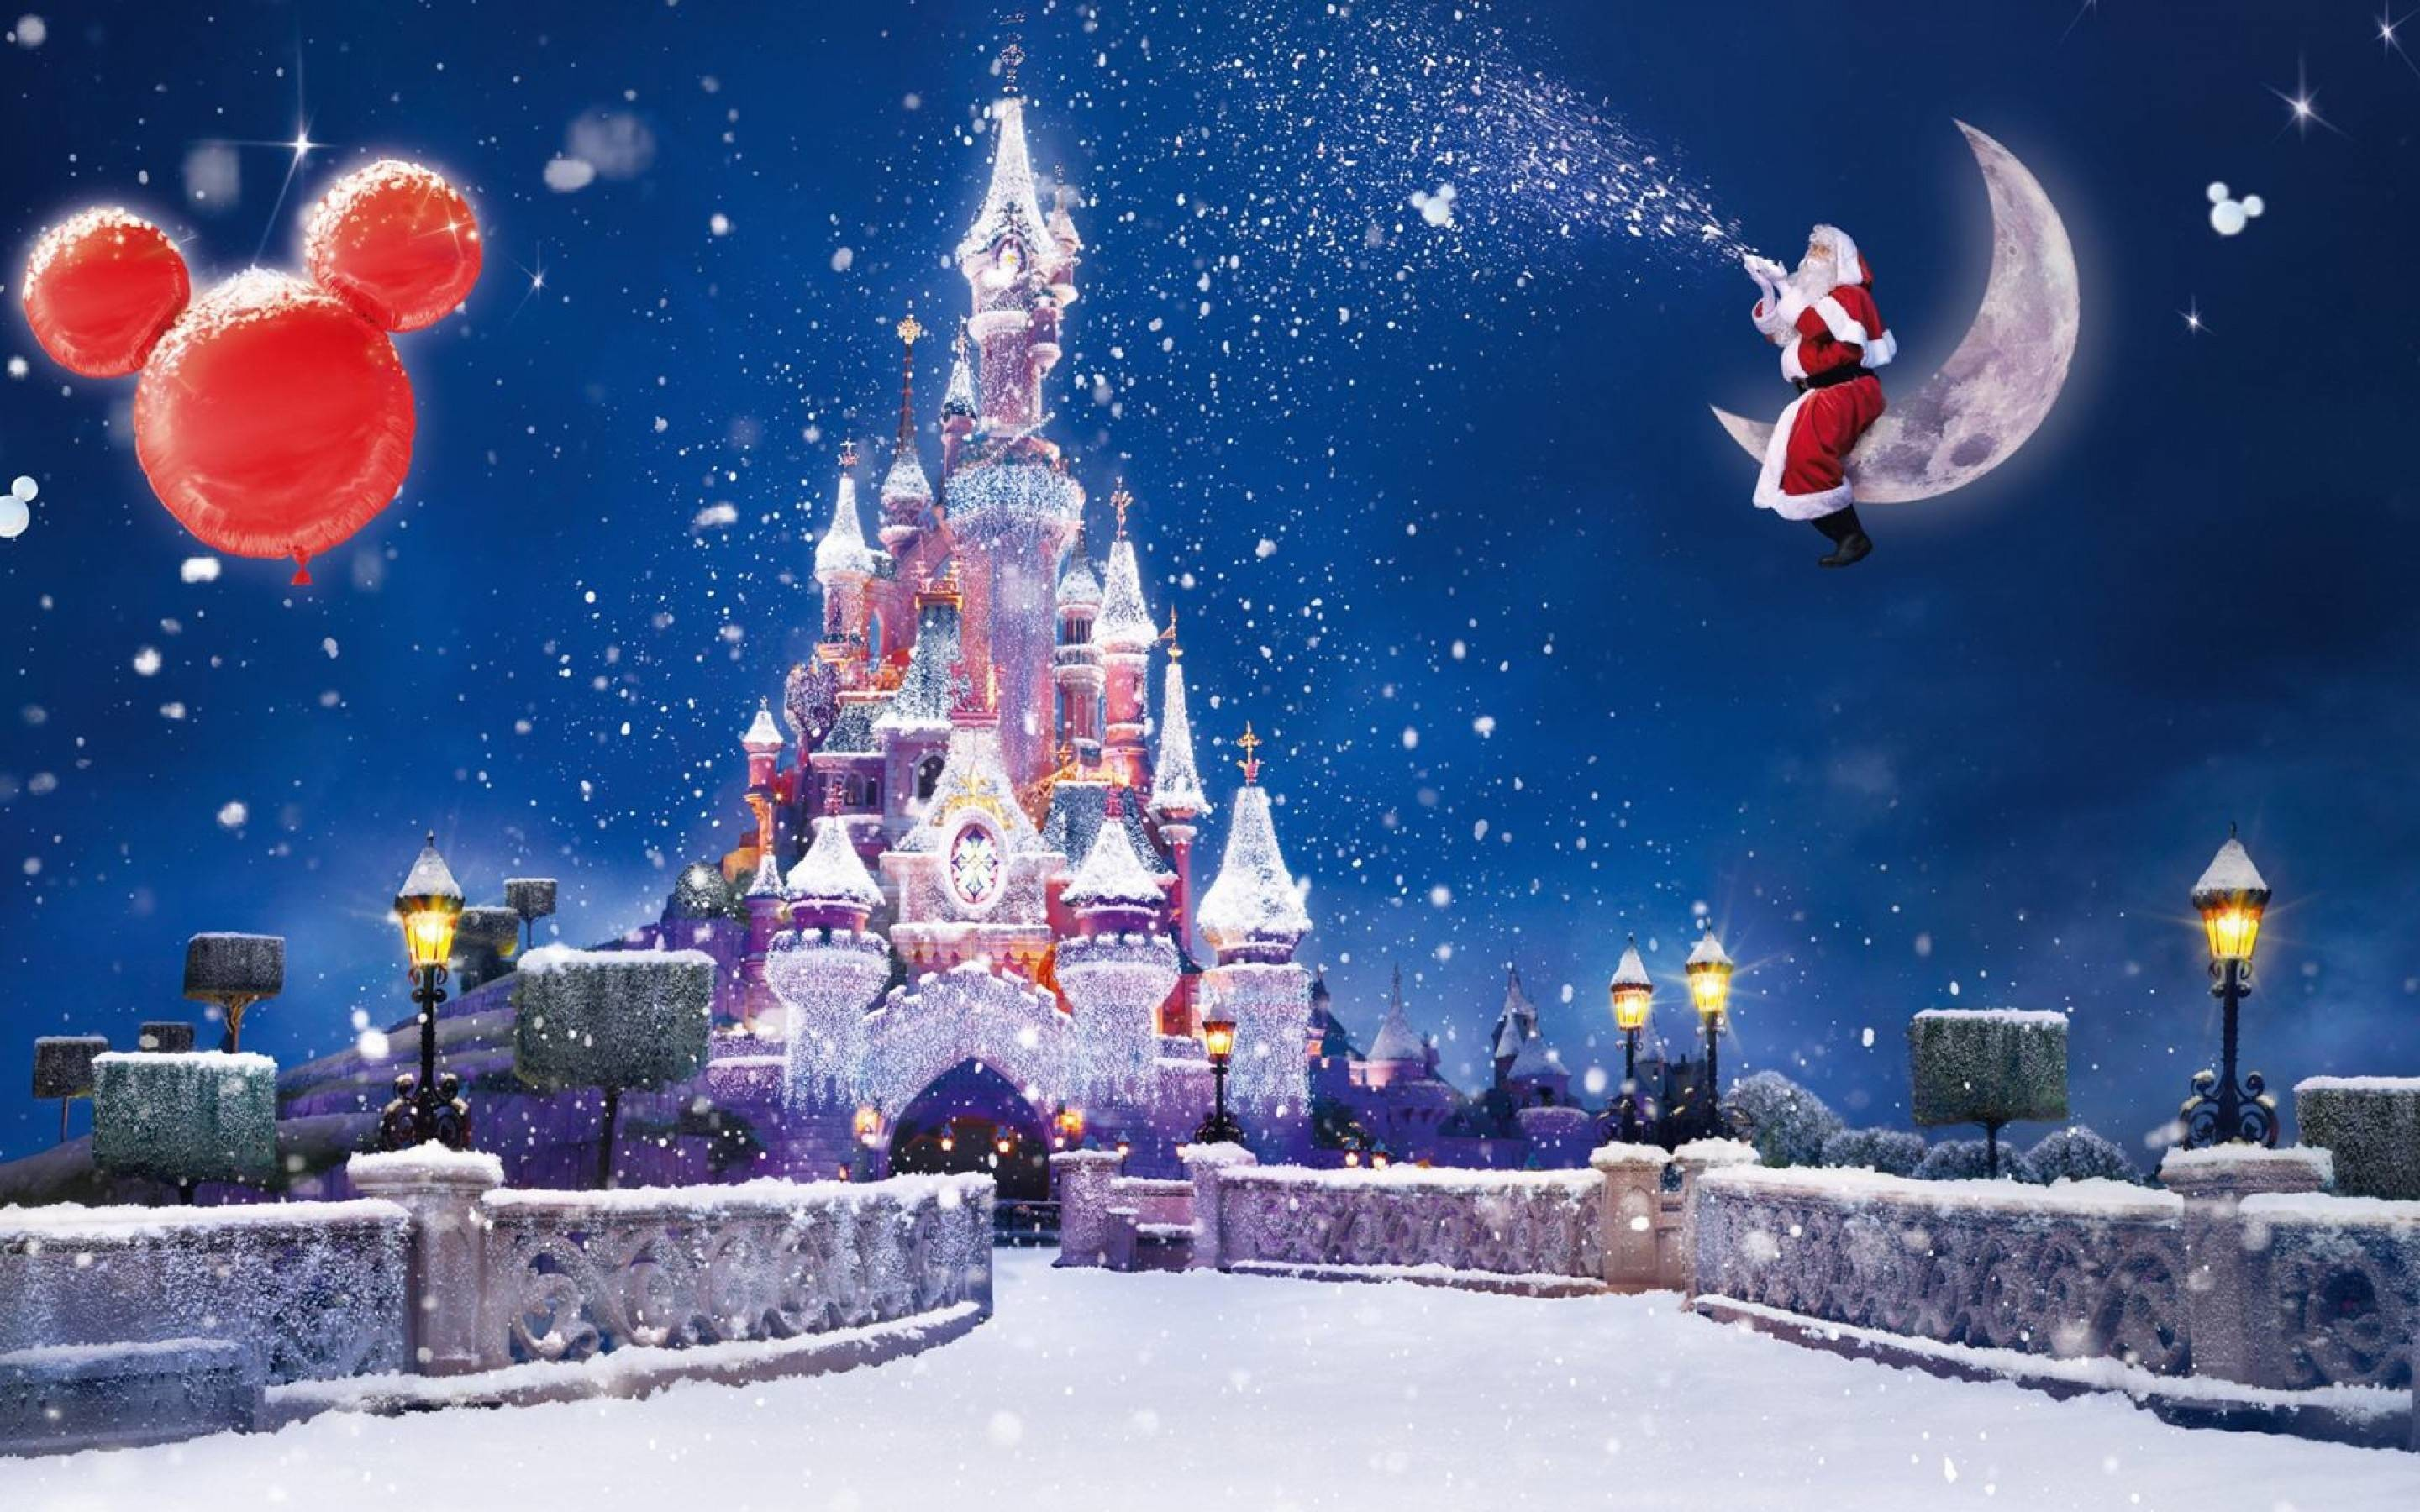 2880x1800 Disney Christmas Wallpapers - Full HD wallpaper search - page 2